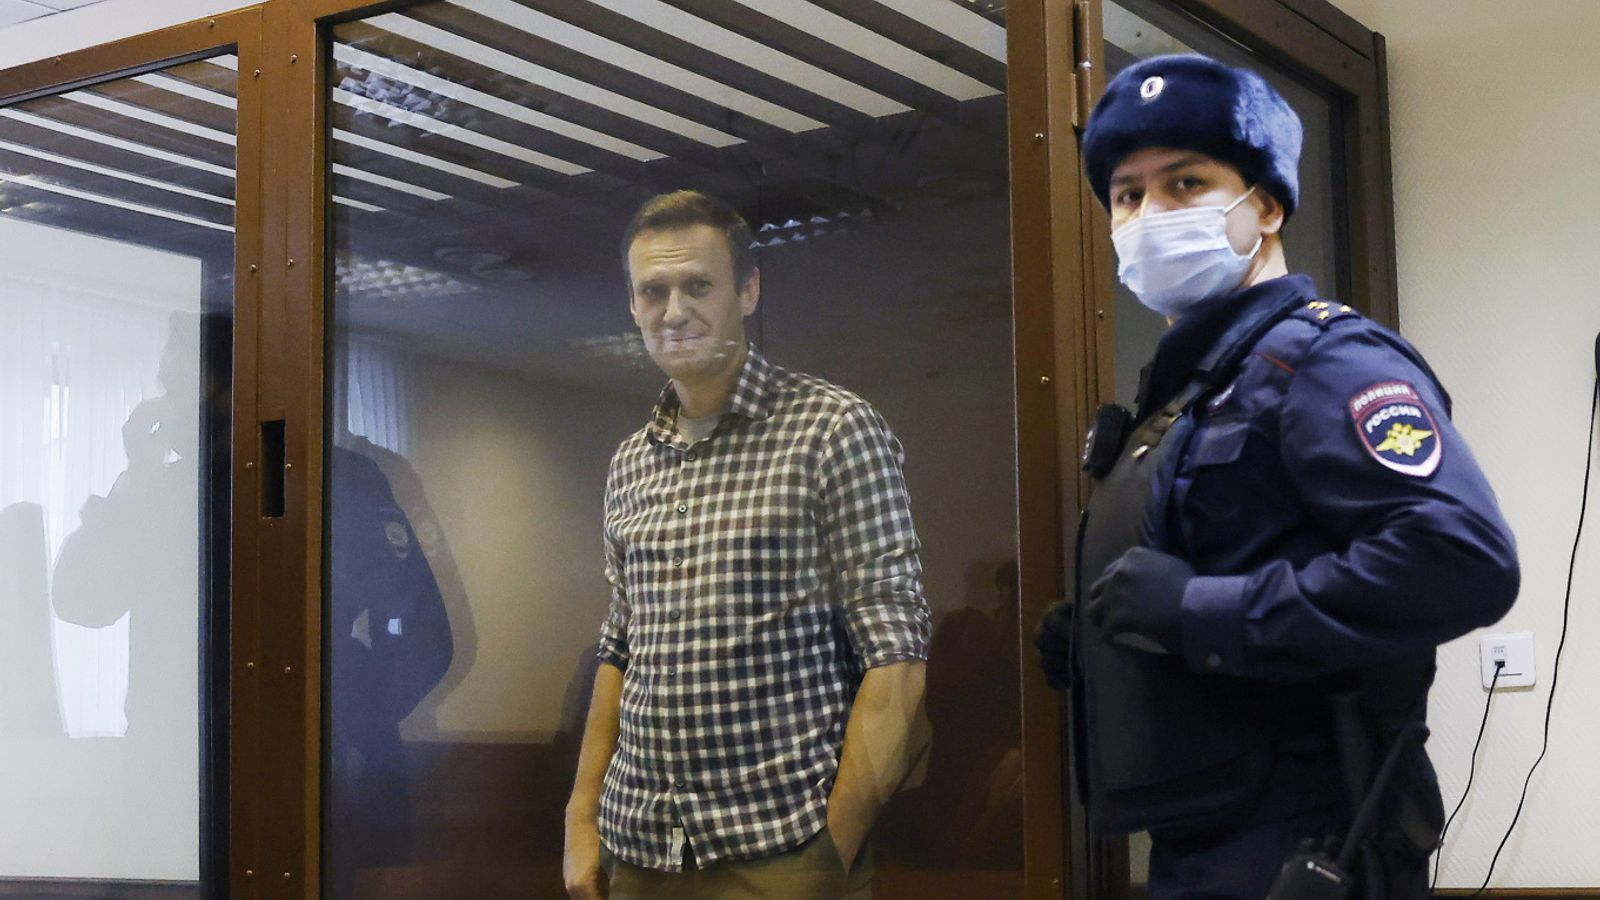 US and EU hit Russia with co-ordinated sanctions over attempted murder and jailing of Alexei Navalny